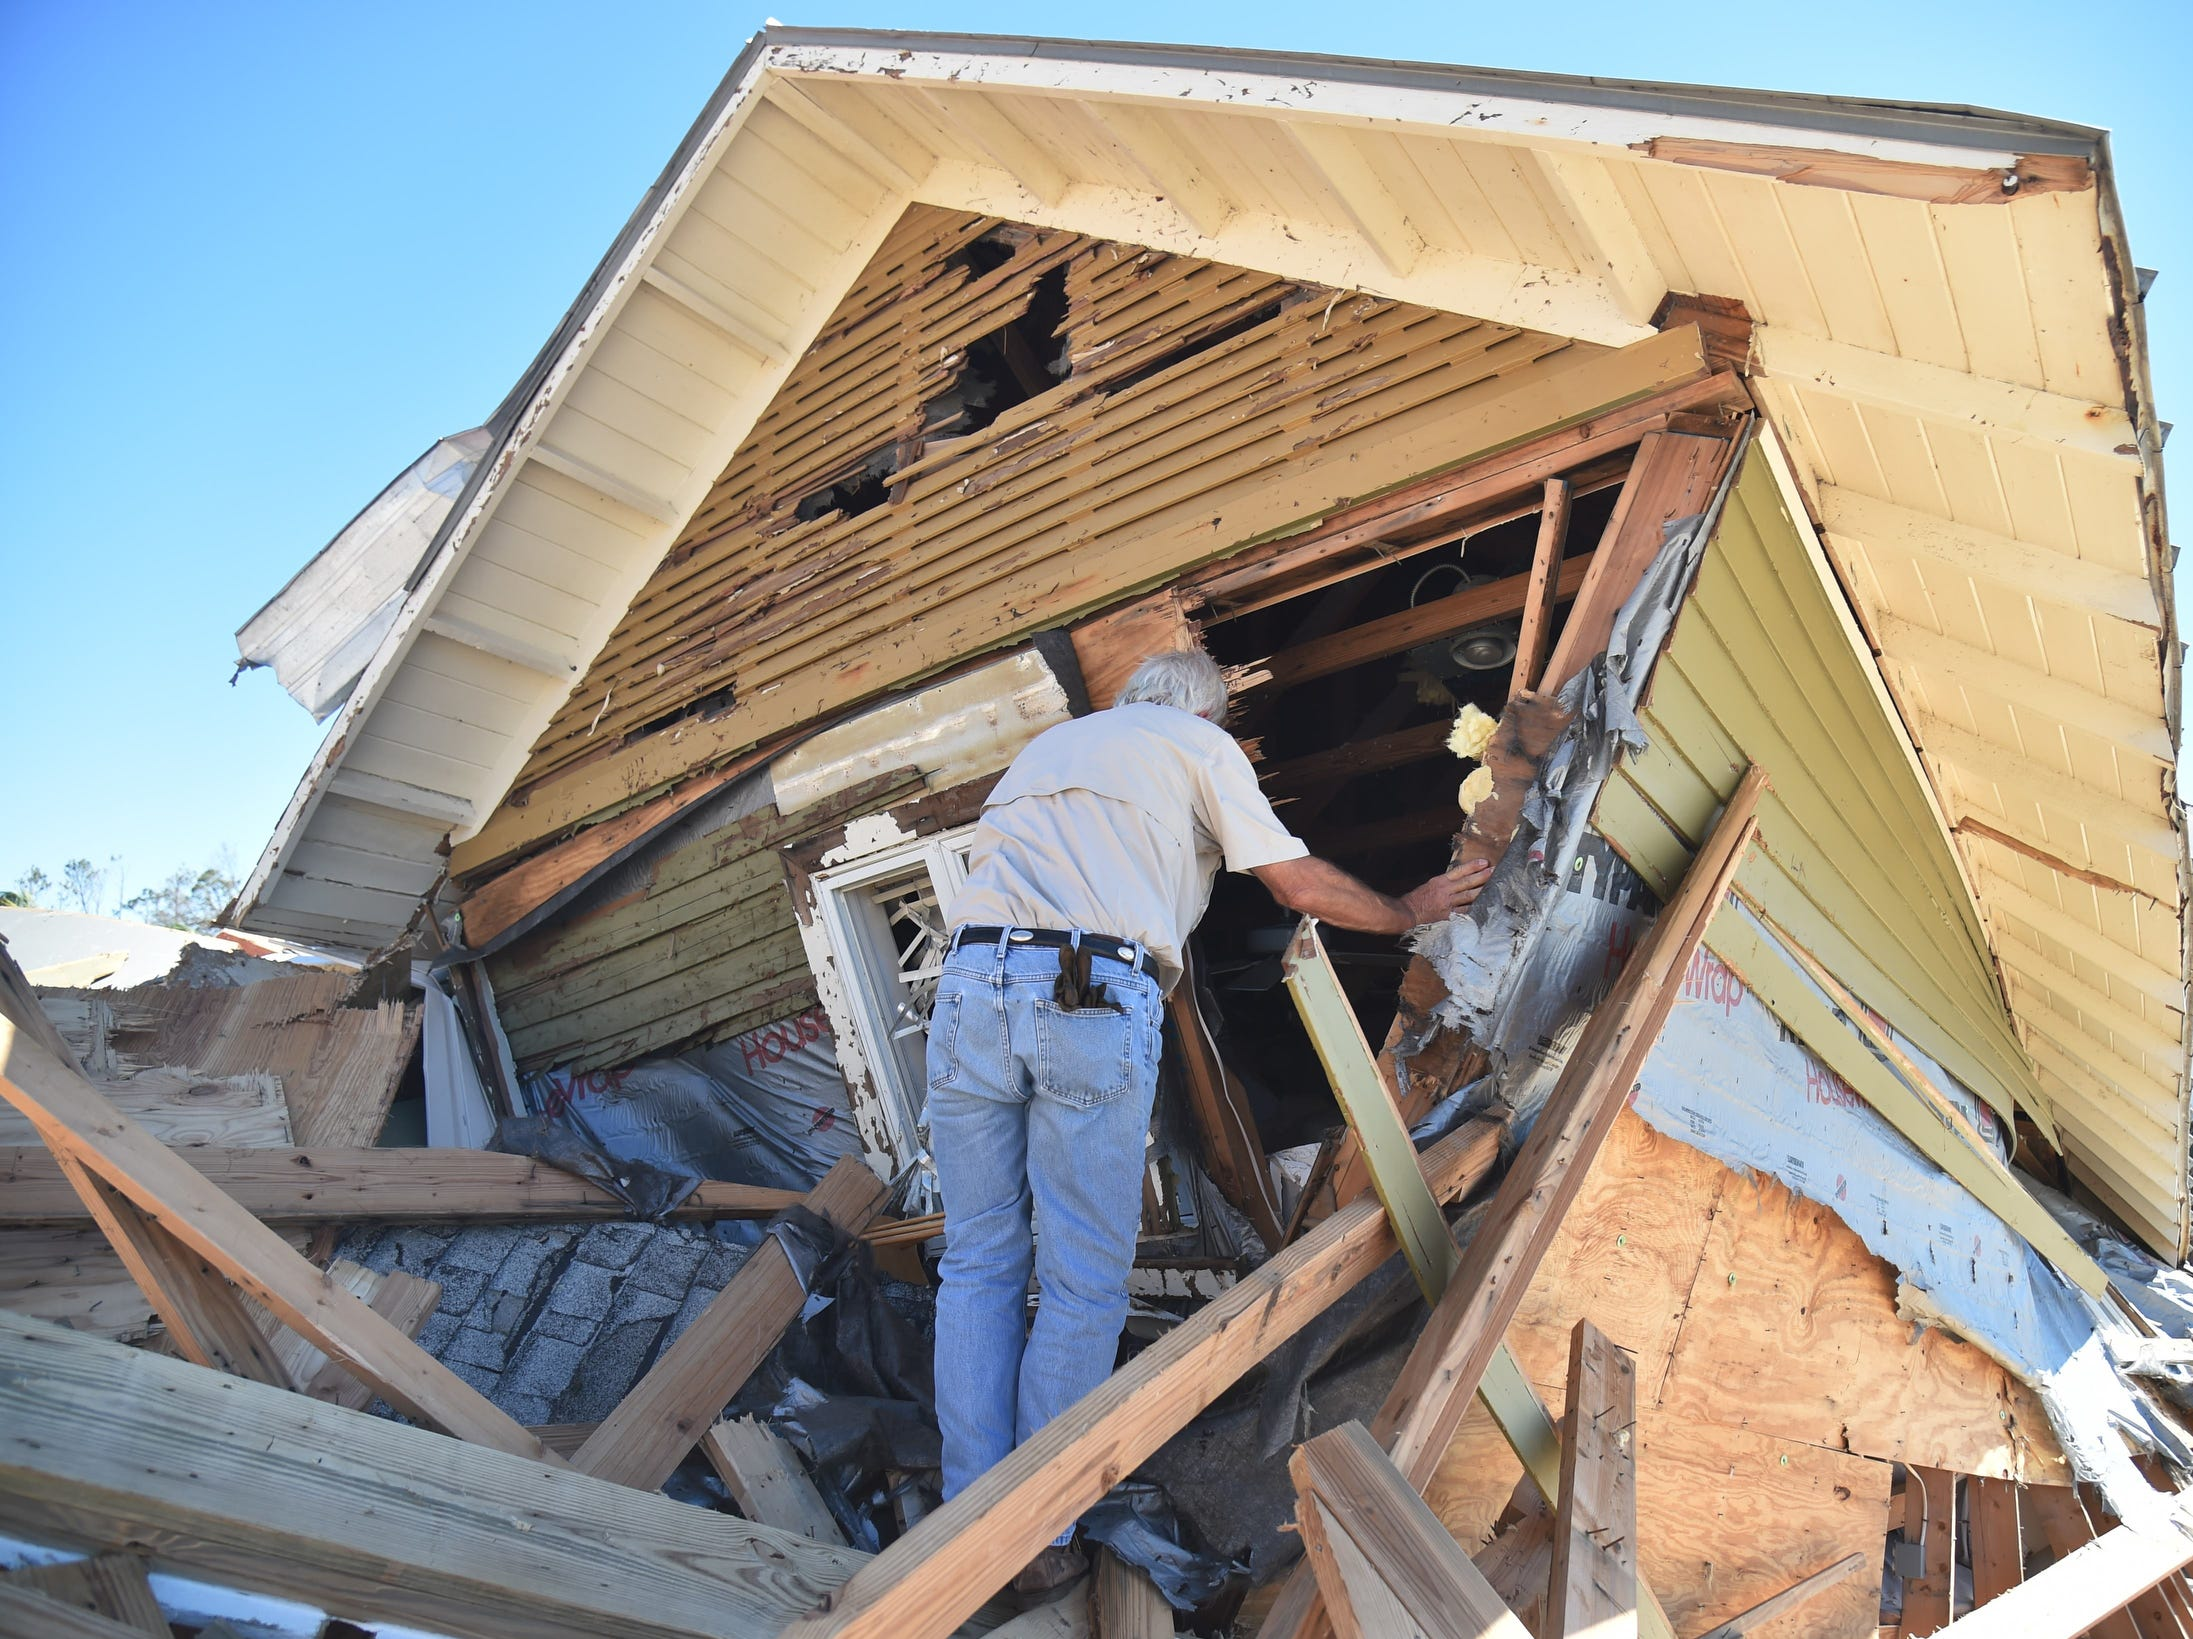 Pete Miller checks the remains of his house in the aftermath of Hurricane Michael on  in Mexico Beach, Fla.  Rescue teams using sniffer dogs carried out a grim search for victims of Hurricane Michael on Friday amid fears that the death toll from the monster storm, which currently stands at 11, could rise.